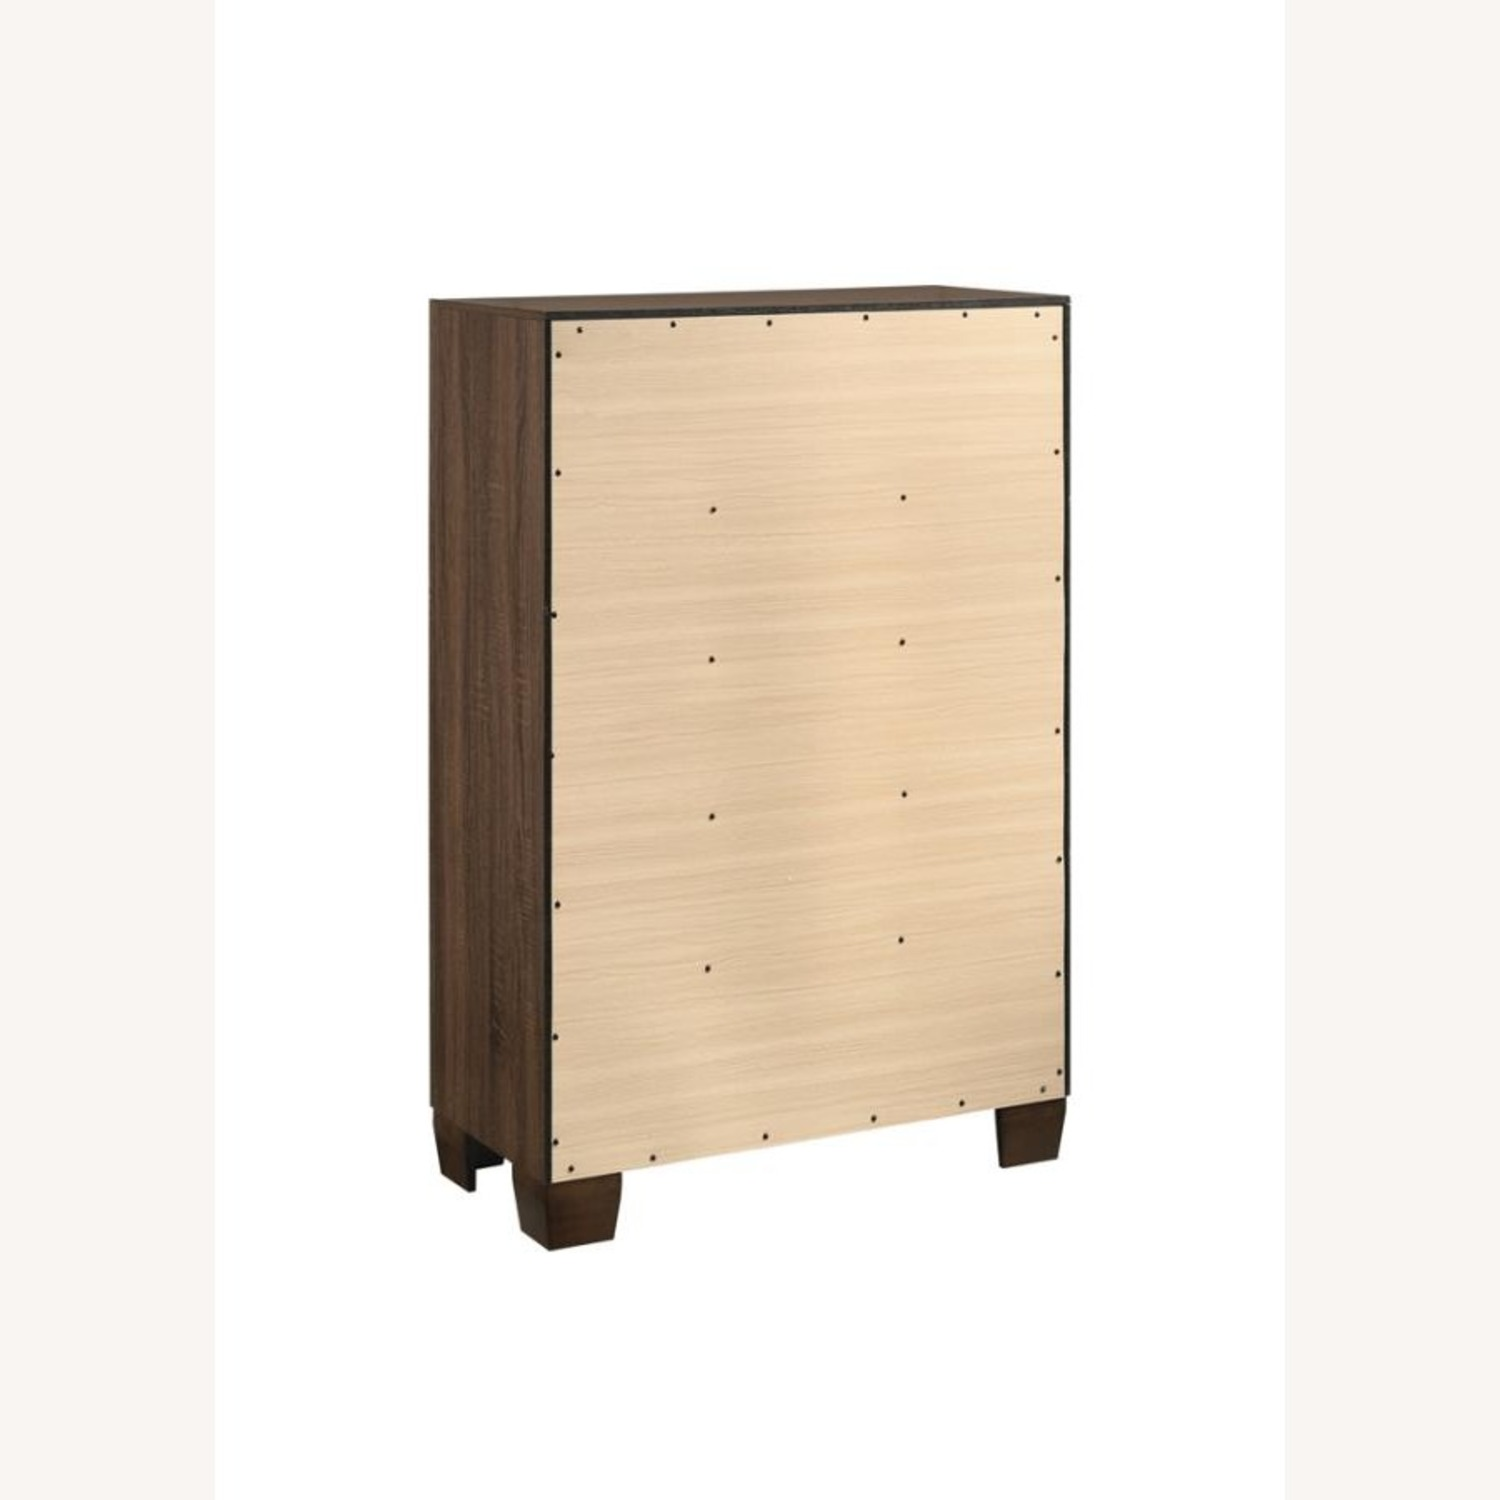 Modern Chest In Warm Brown Finish - image-3